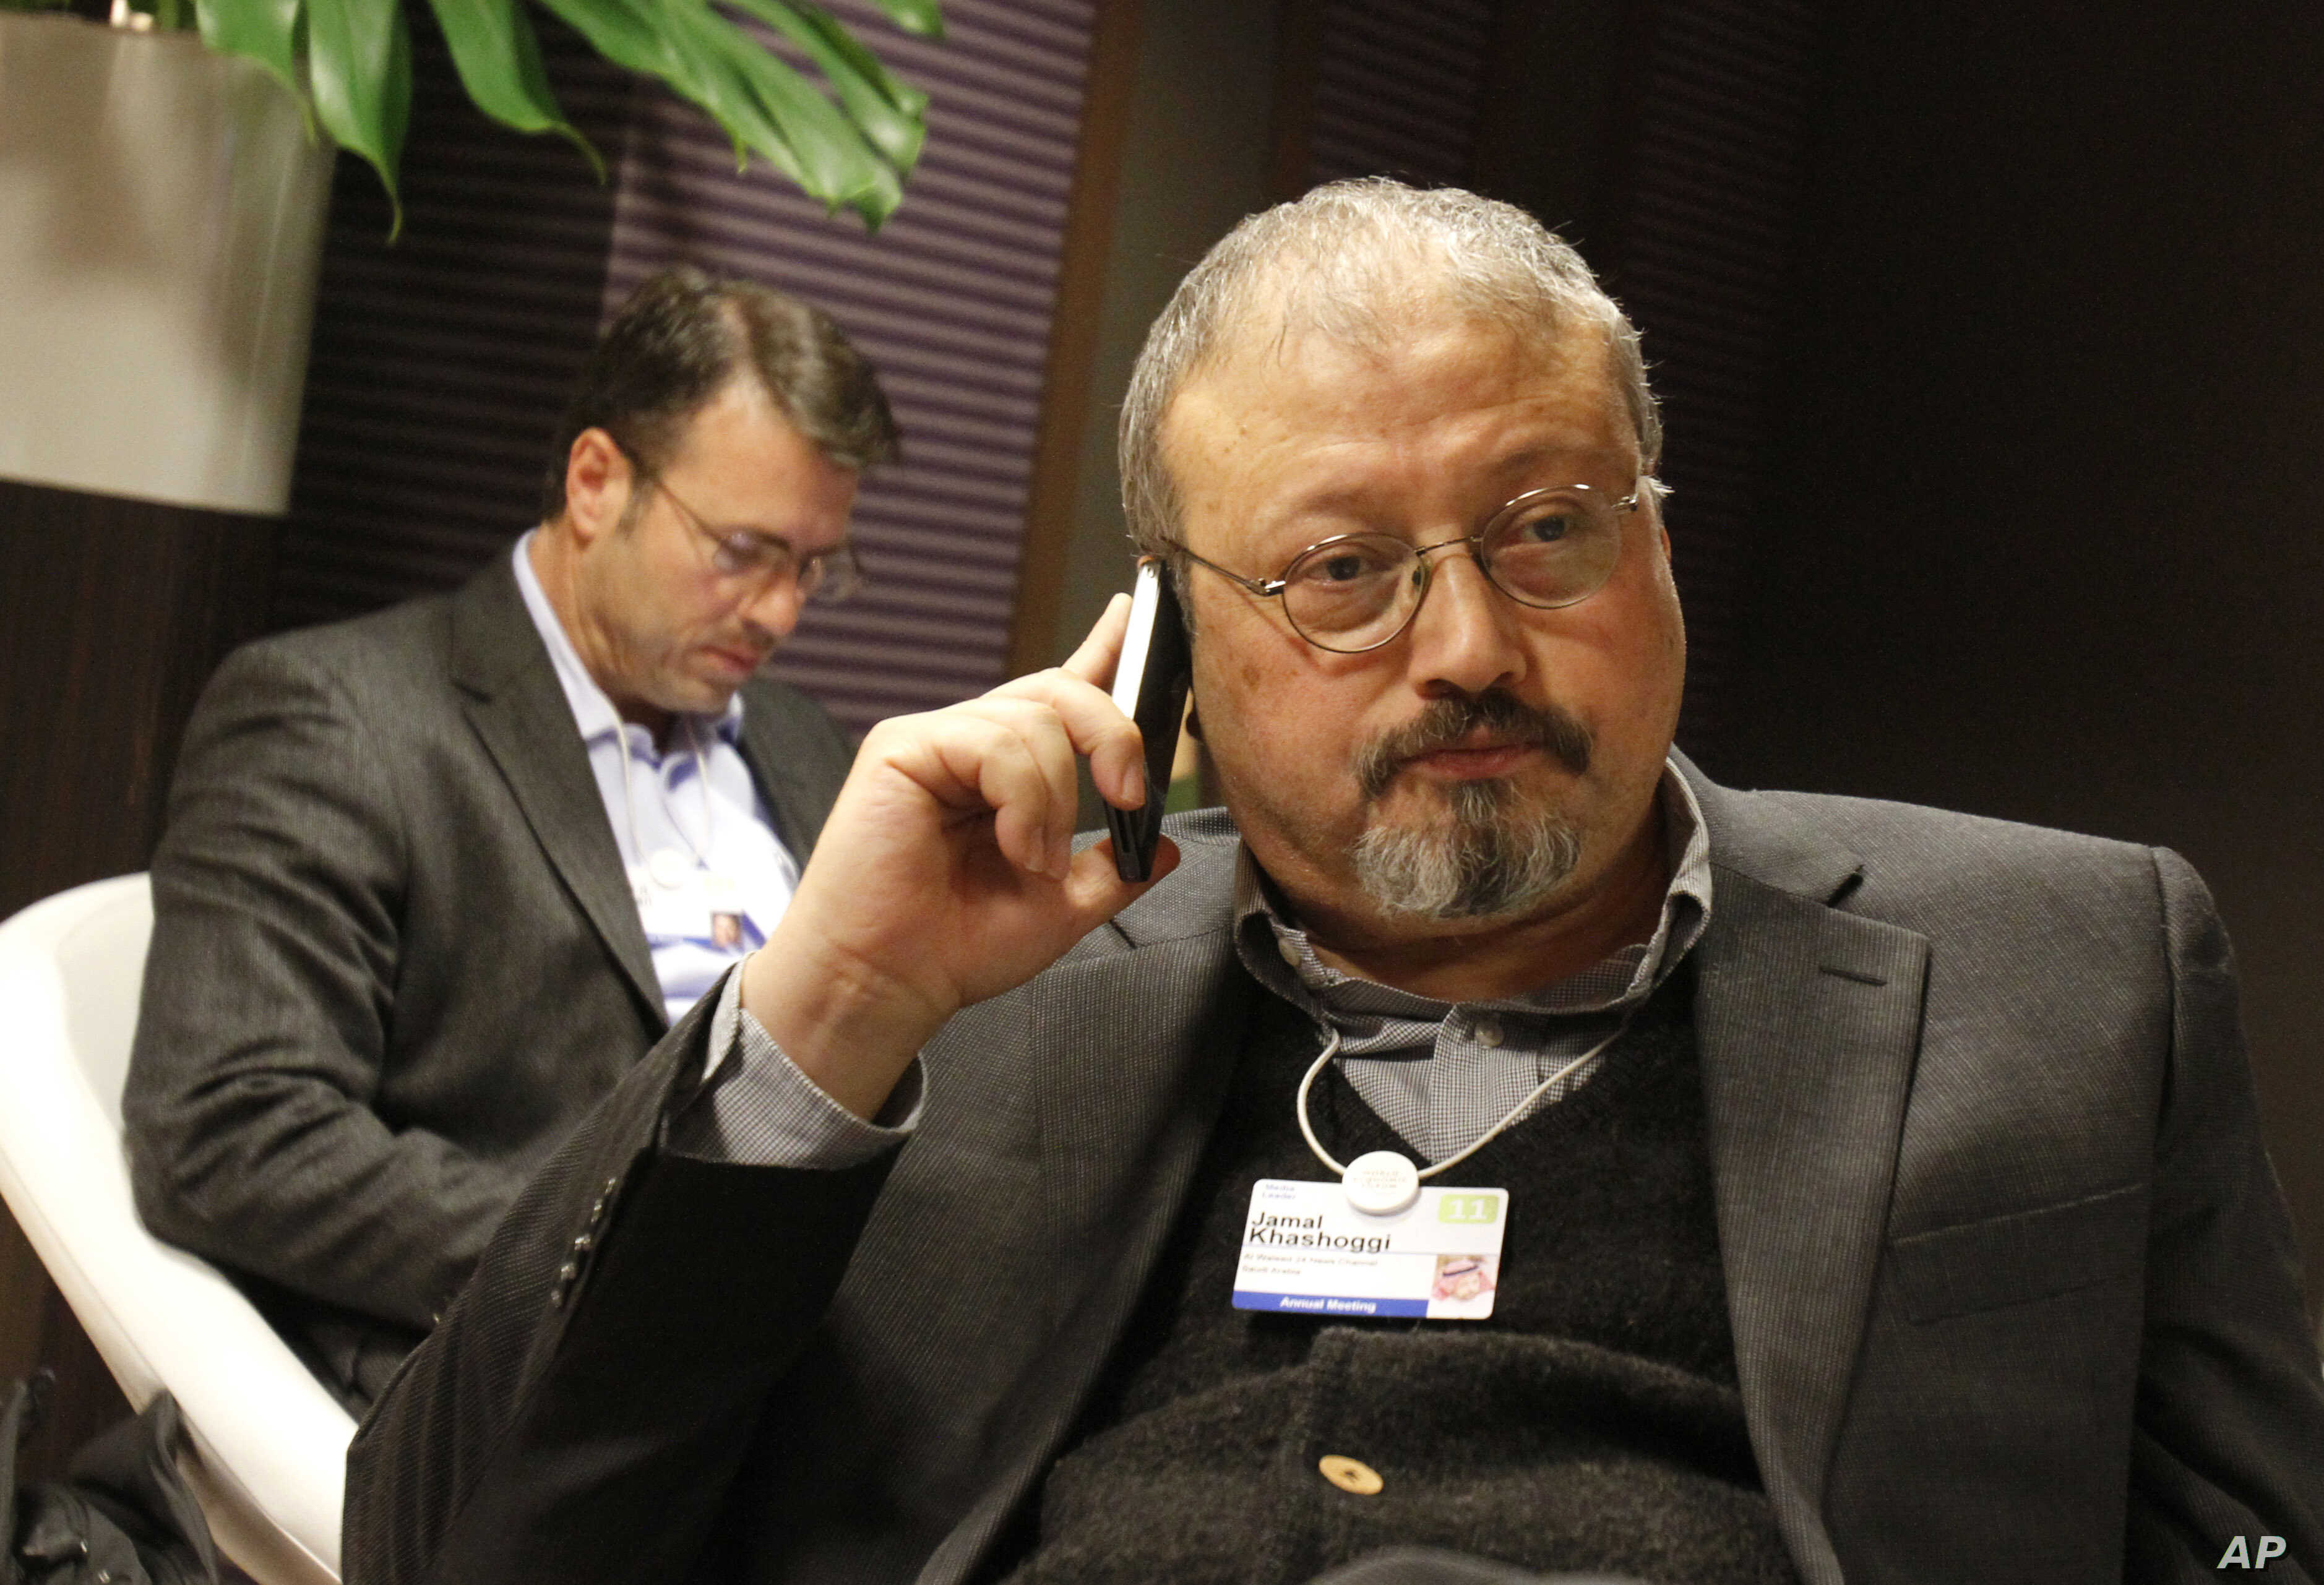 FILE - Saudi journalist Jamal Khashoggi at the World Economic Forum in Davos, Switzerland, Jan. 29, 2011. Khashoggi was a Saudi insider. He rubbed shoulders with the Saudi royal family and supported its efforts to nudge the entrenched ultraconservati